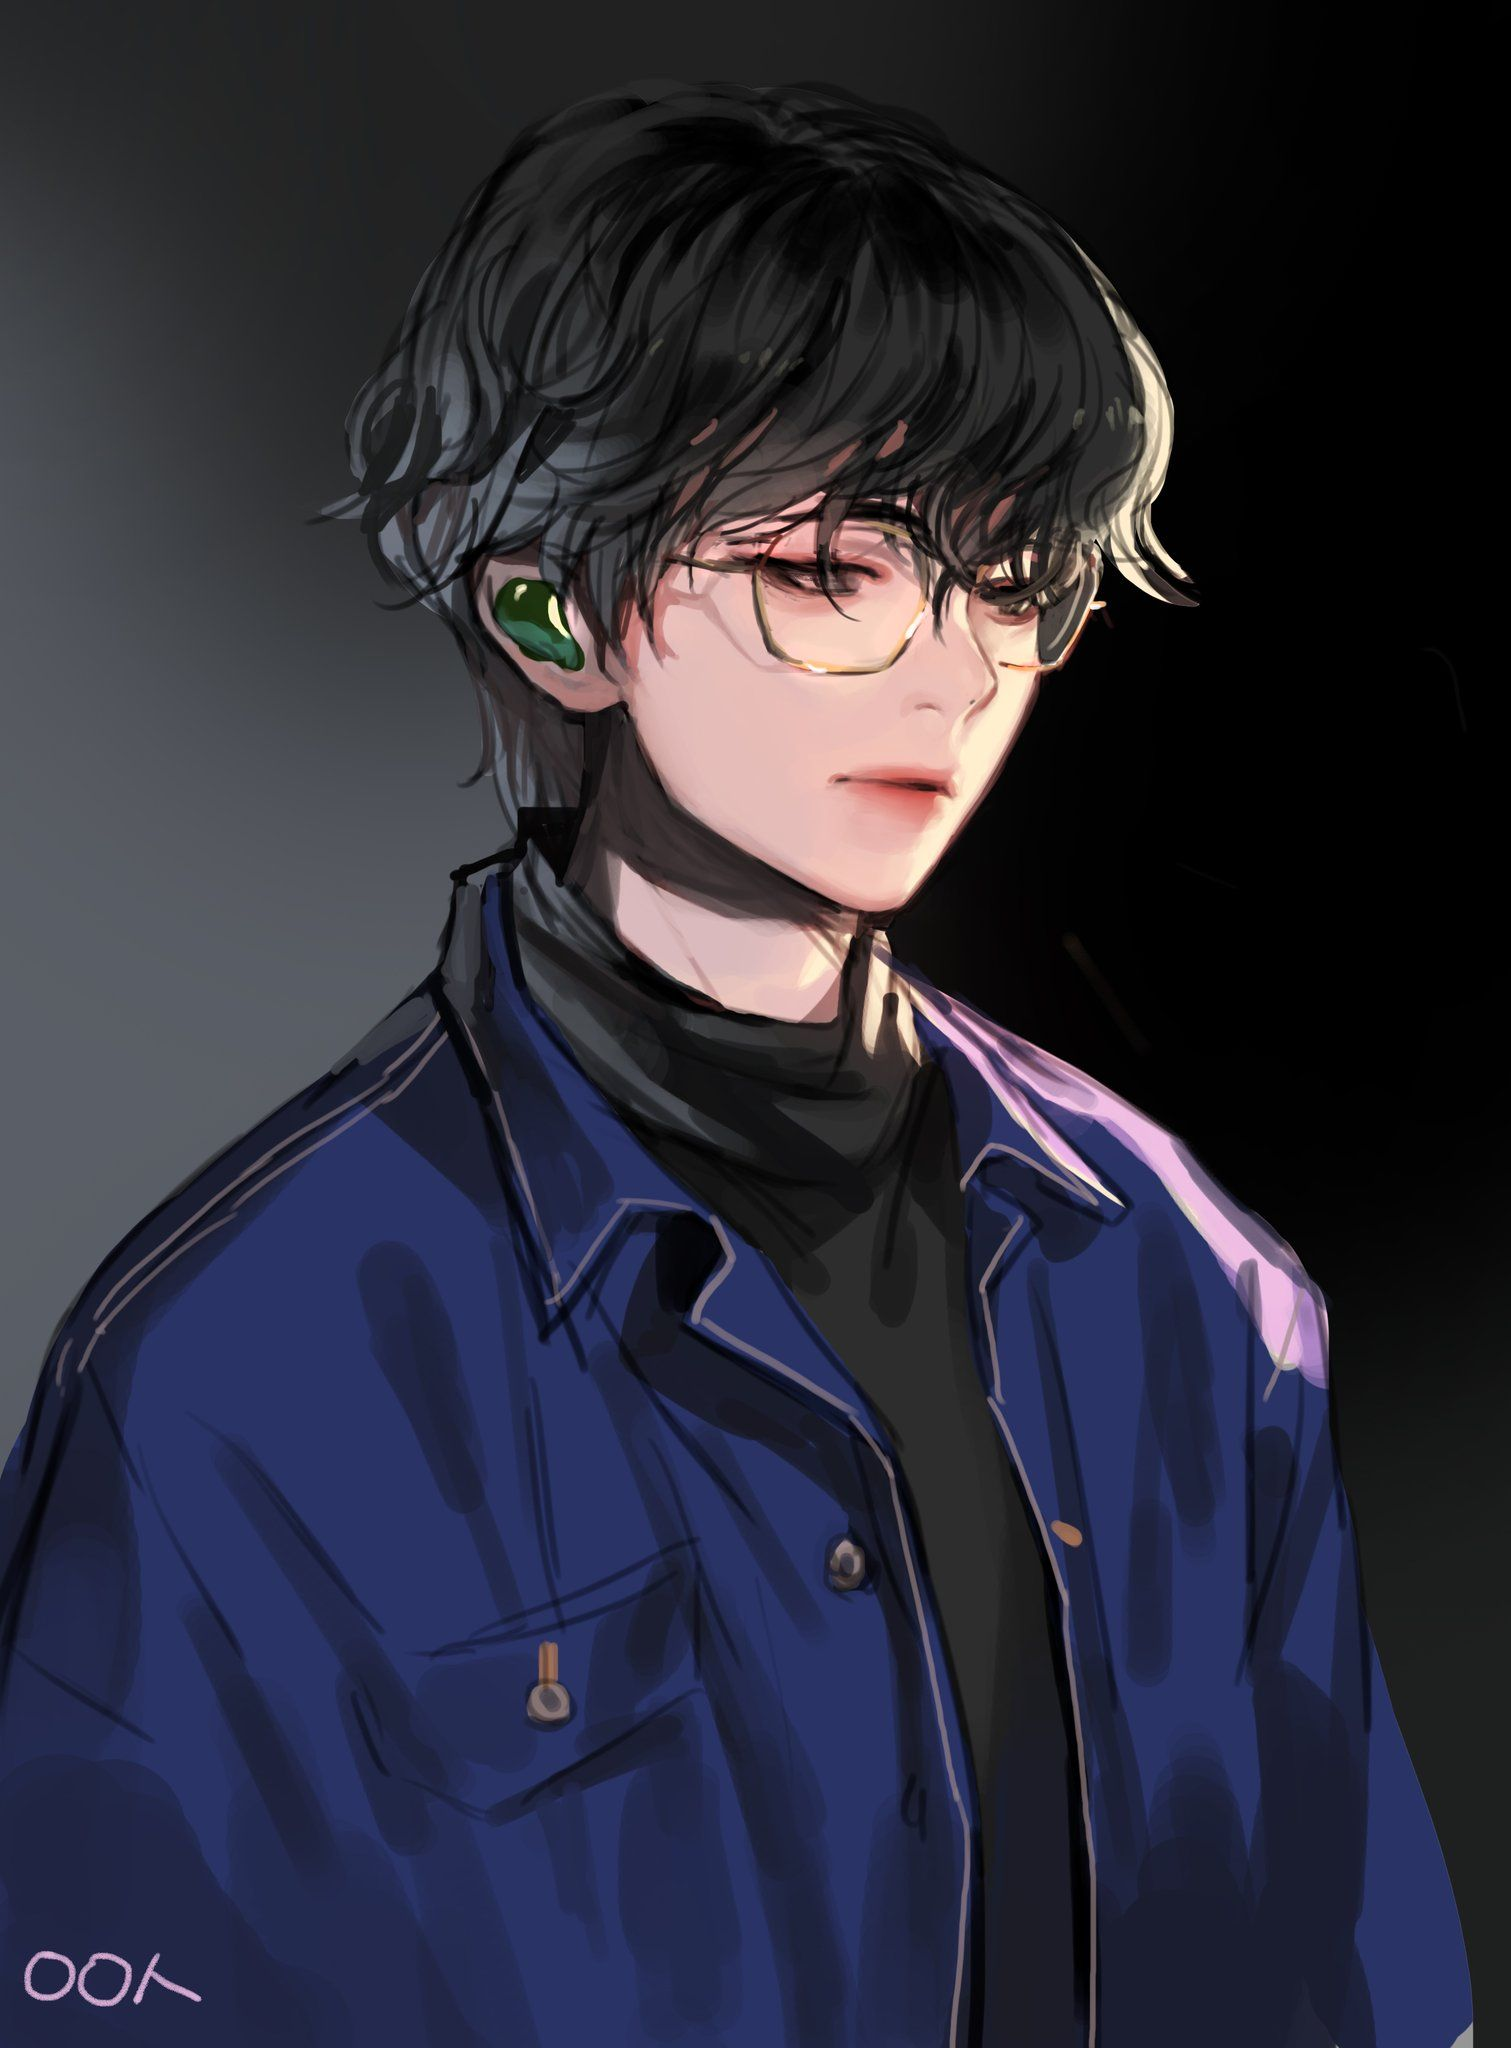 으앙슝 on Taehyung fanart, Bts chibi, Bts drawings